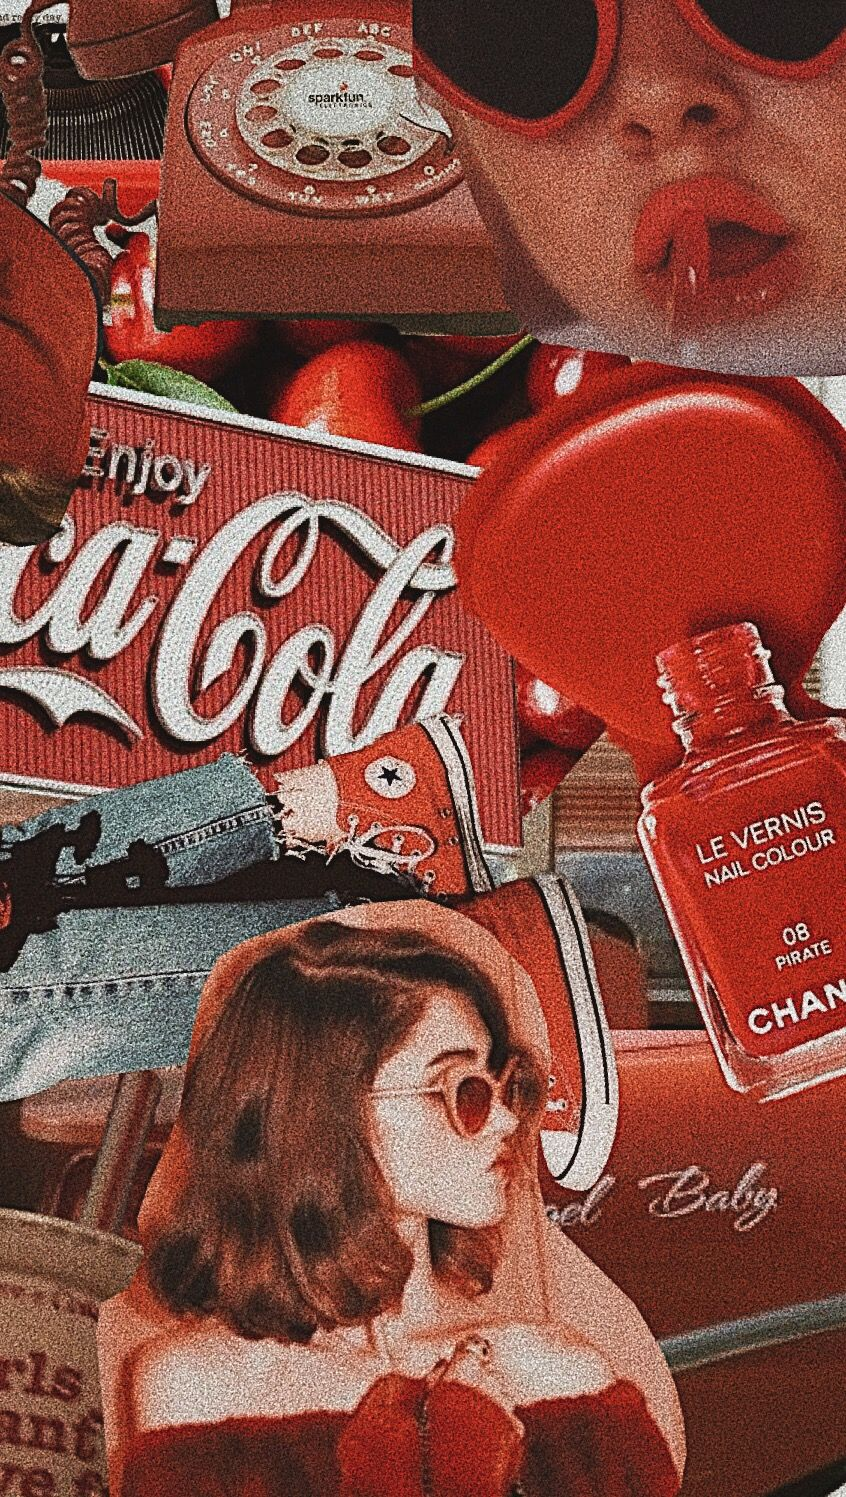 Coco Cola Aesthetic Vintage Red 90s Aesthetic Wallpaper 90s Aesthetic Wallpaper Vintage Aesthetic Wallpaper Vintage